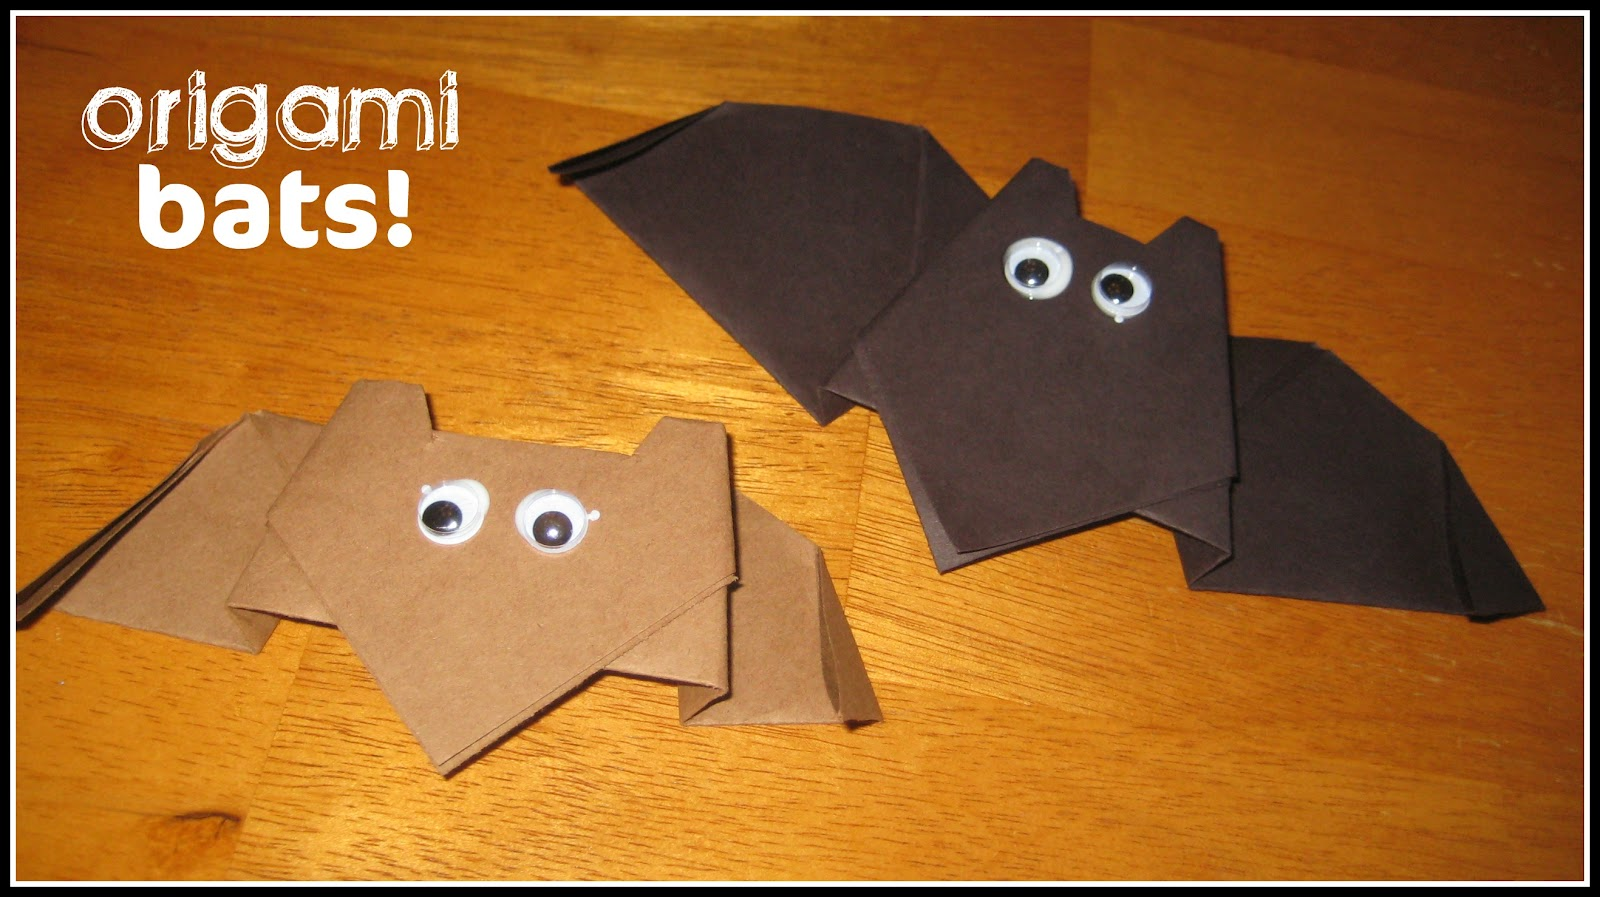 Relentlessly Fun Deceptively Educational Origami Bats